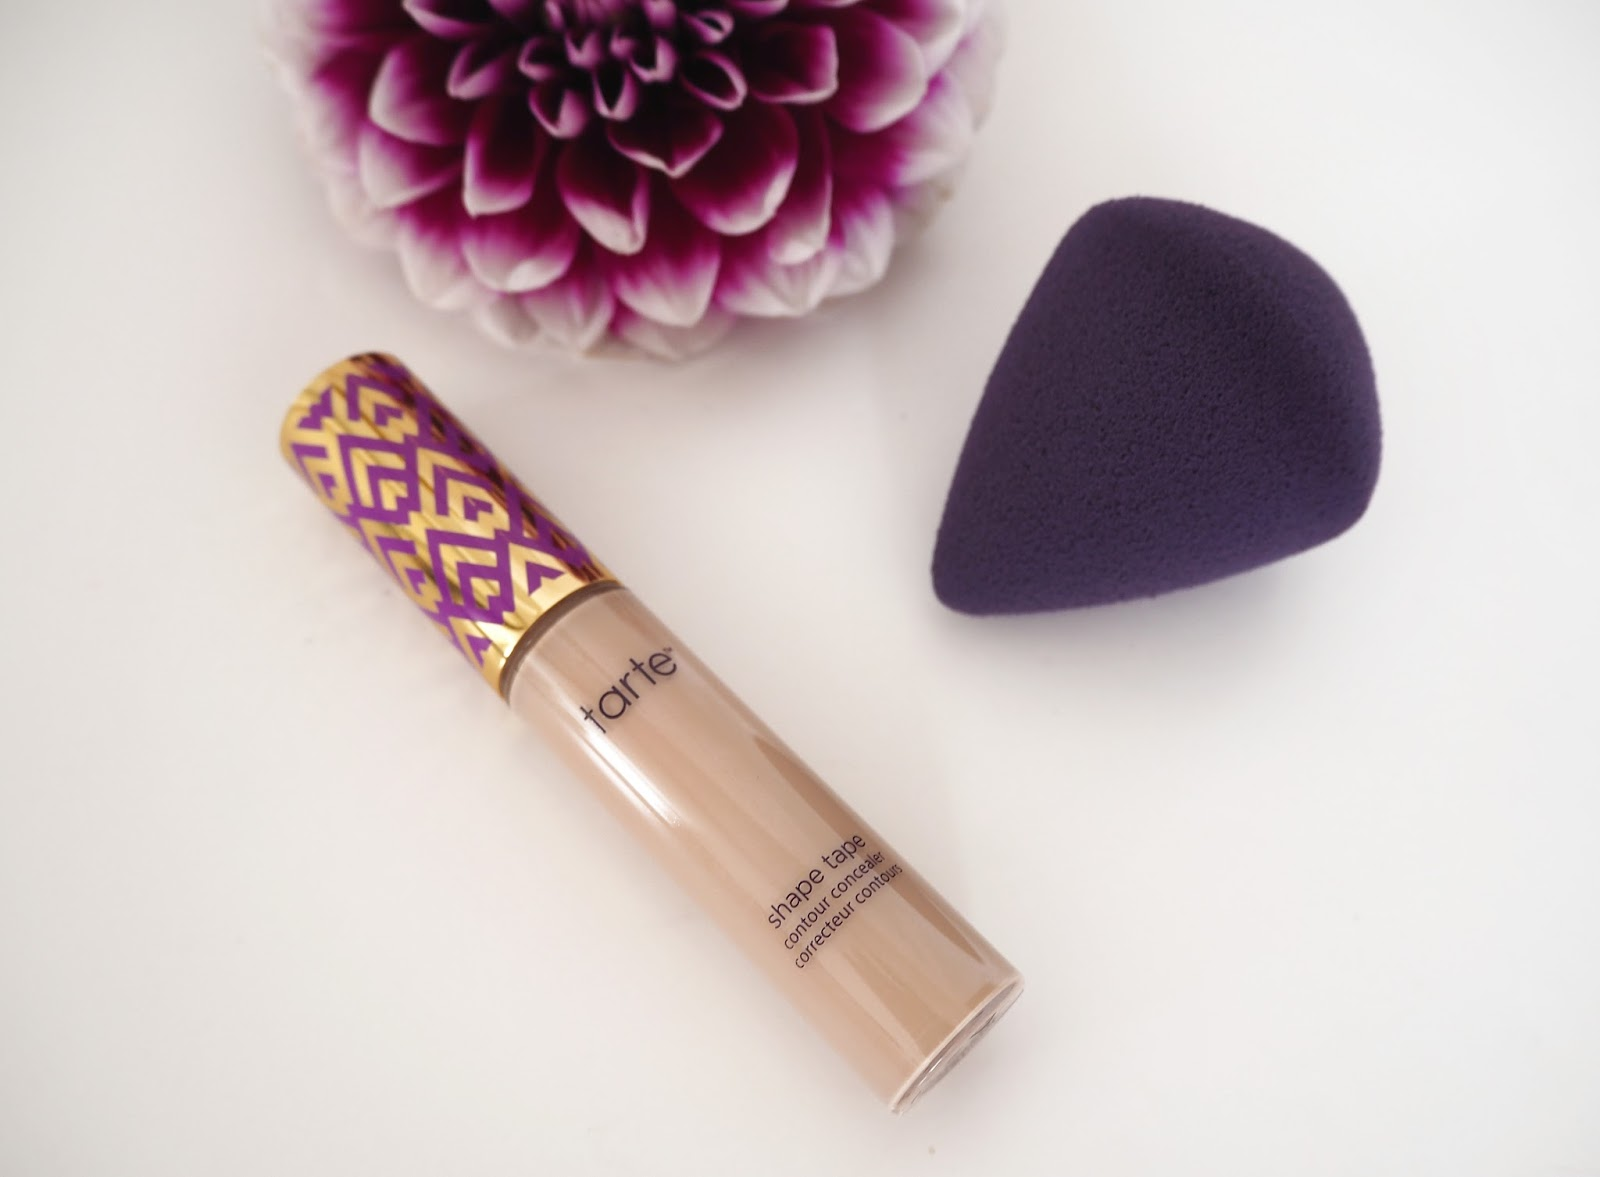 Loves List: October, Katie Kirk Loves, Makeup, Makeup Swatches, Tarte Cosmetics, Shape Tape Concealer, Best Concealer Ever, QVC Beauty, Beauty Blogger, UK Blogger